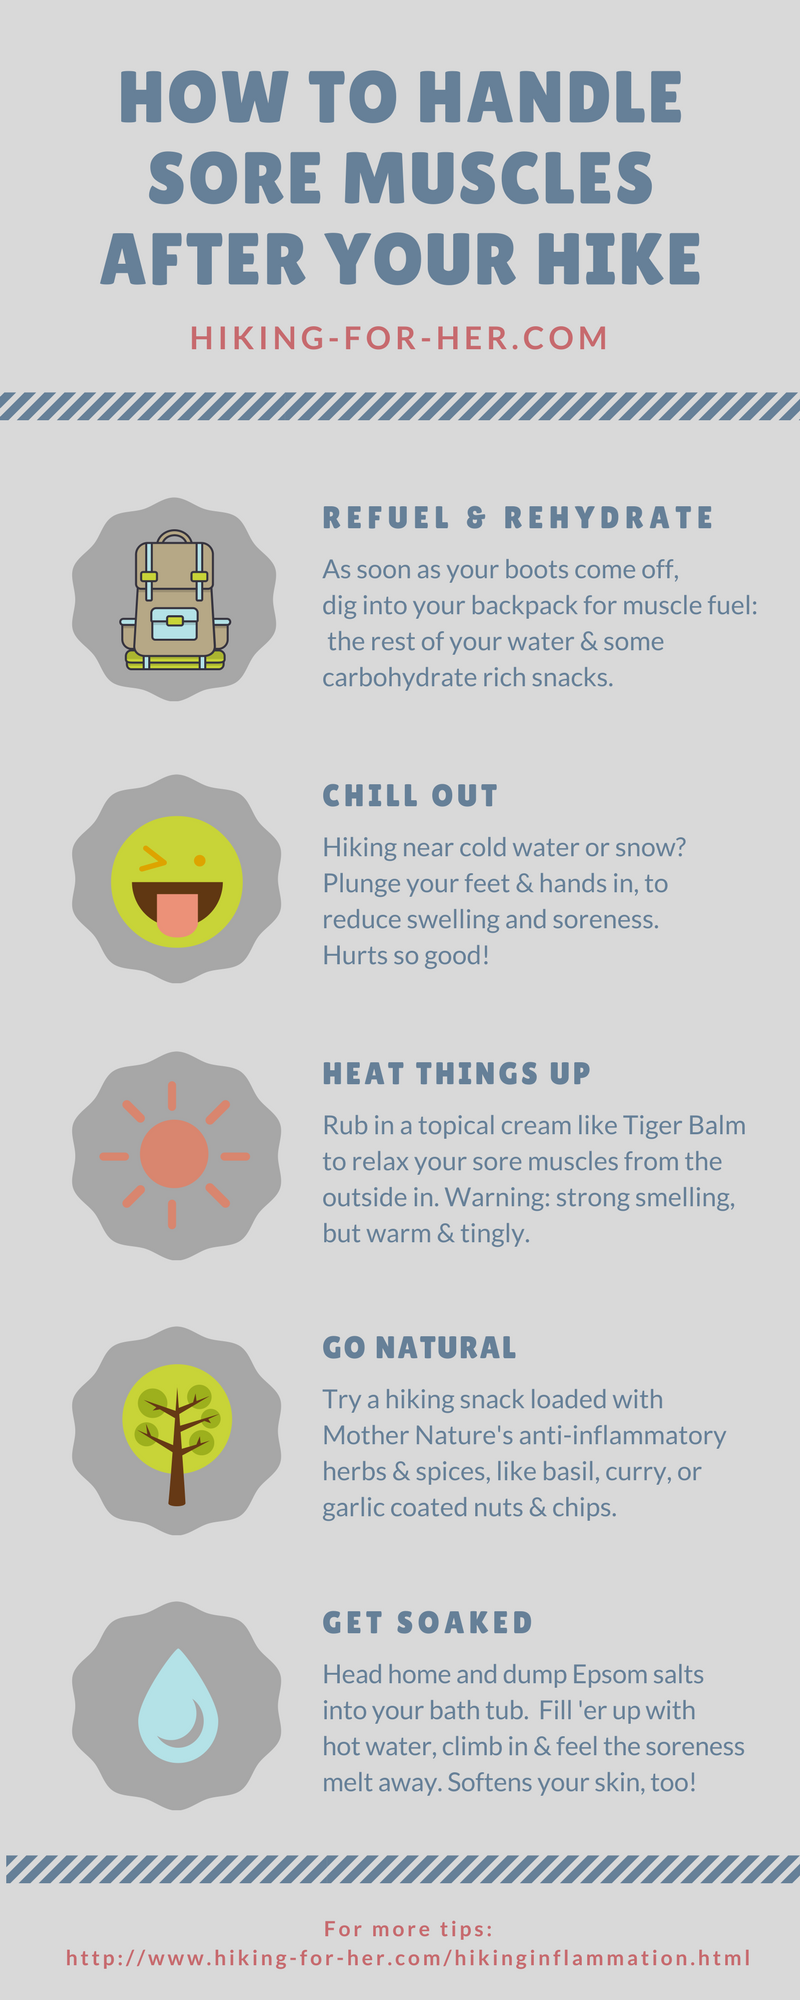 Sore muscles after hiking? Use these tips to handle muscle soreness and take good care of yourself. #hiking #backpacking #soreness